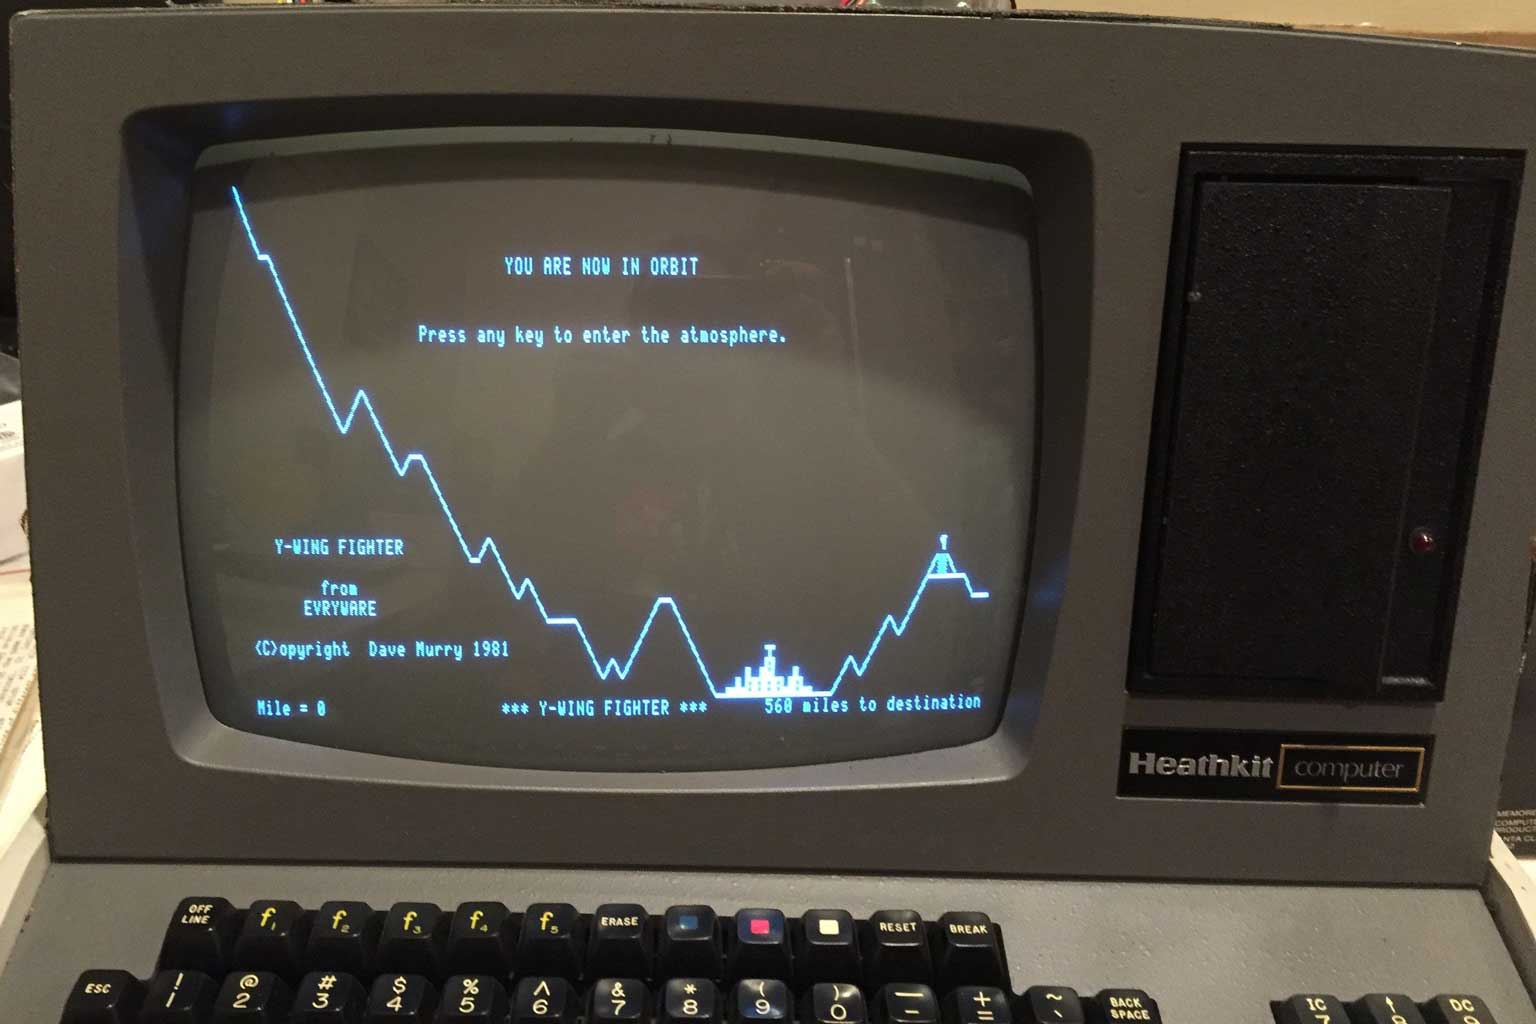 One of the old games I used to play on the Heathkit